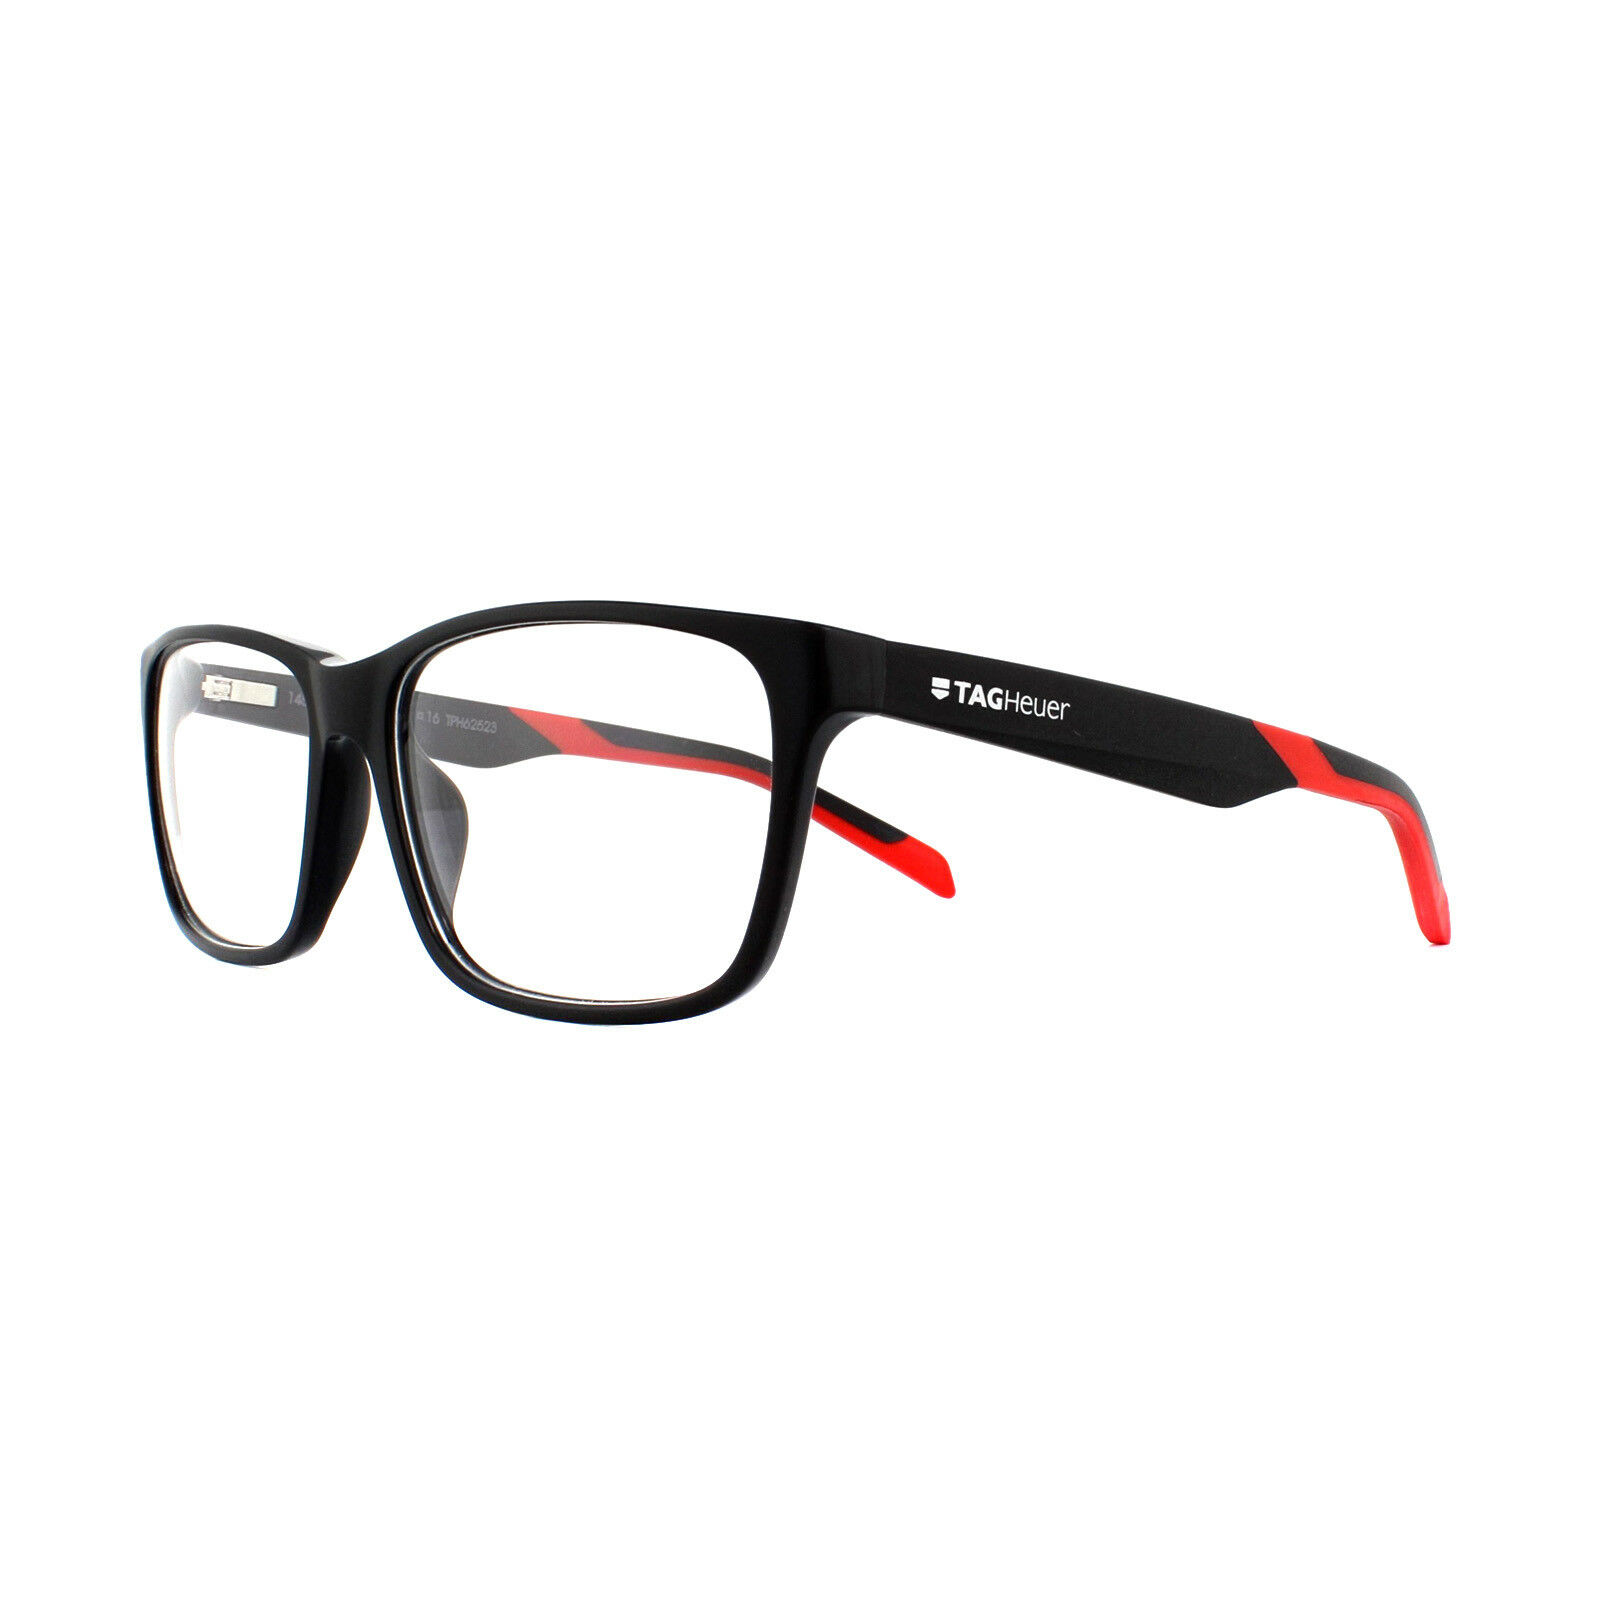 a413fcb681 Tag Heuer Glasses Frames B-urban Th0552 005 Black   Red for sale ...